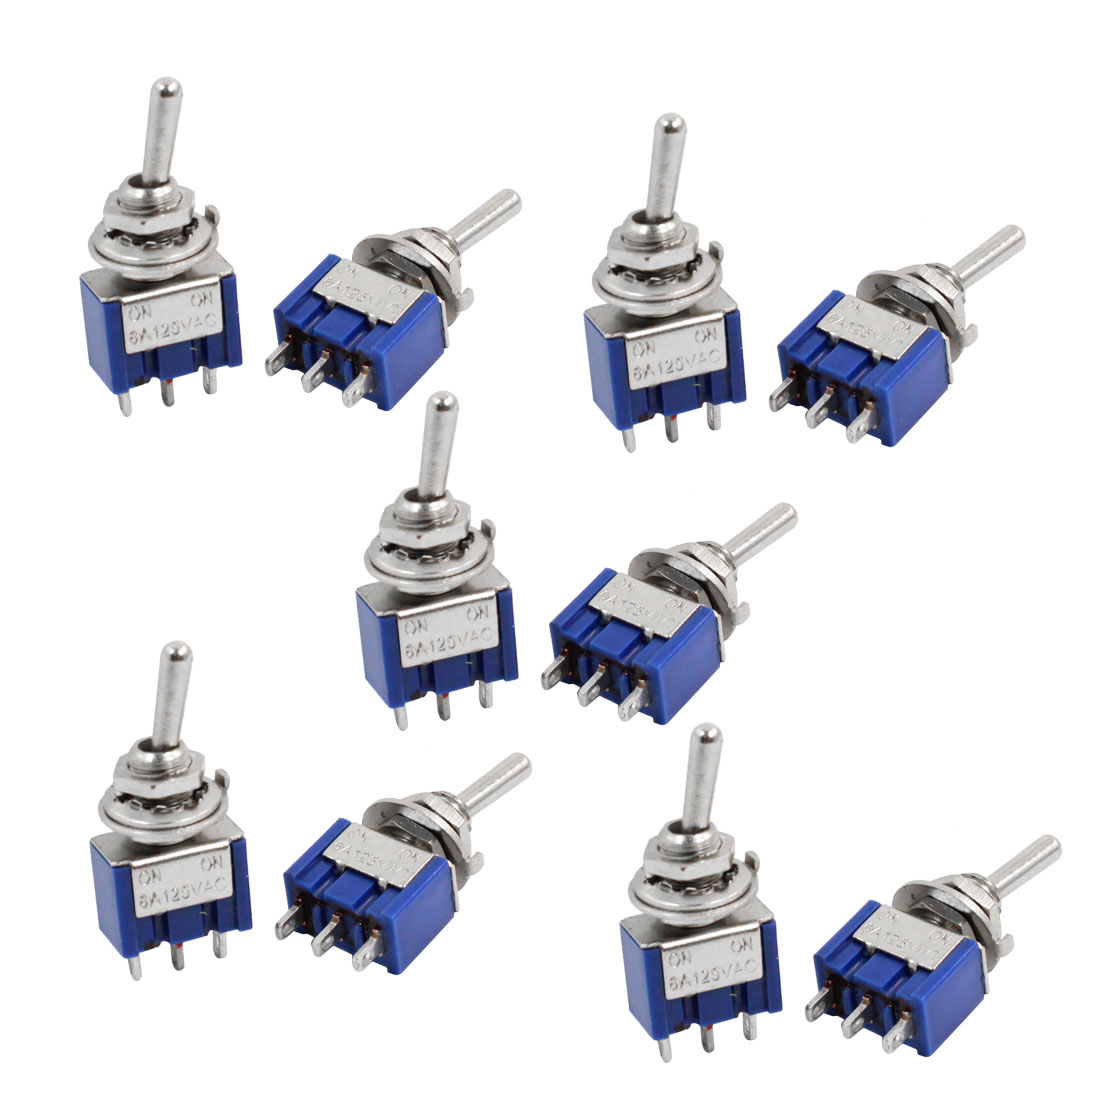 10pcs Self Locking Miniature Toggle Switch Blue 3 Pin SPDT On/On AC125V 6A